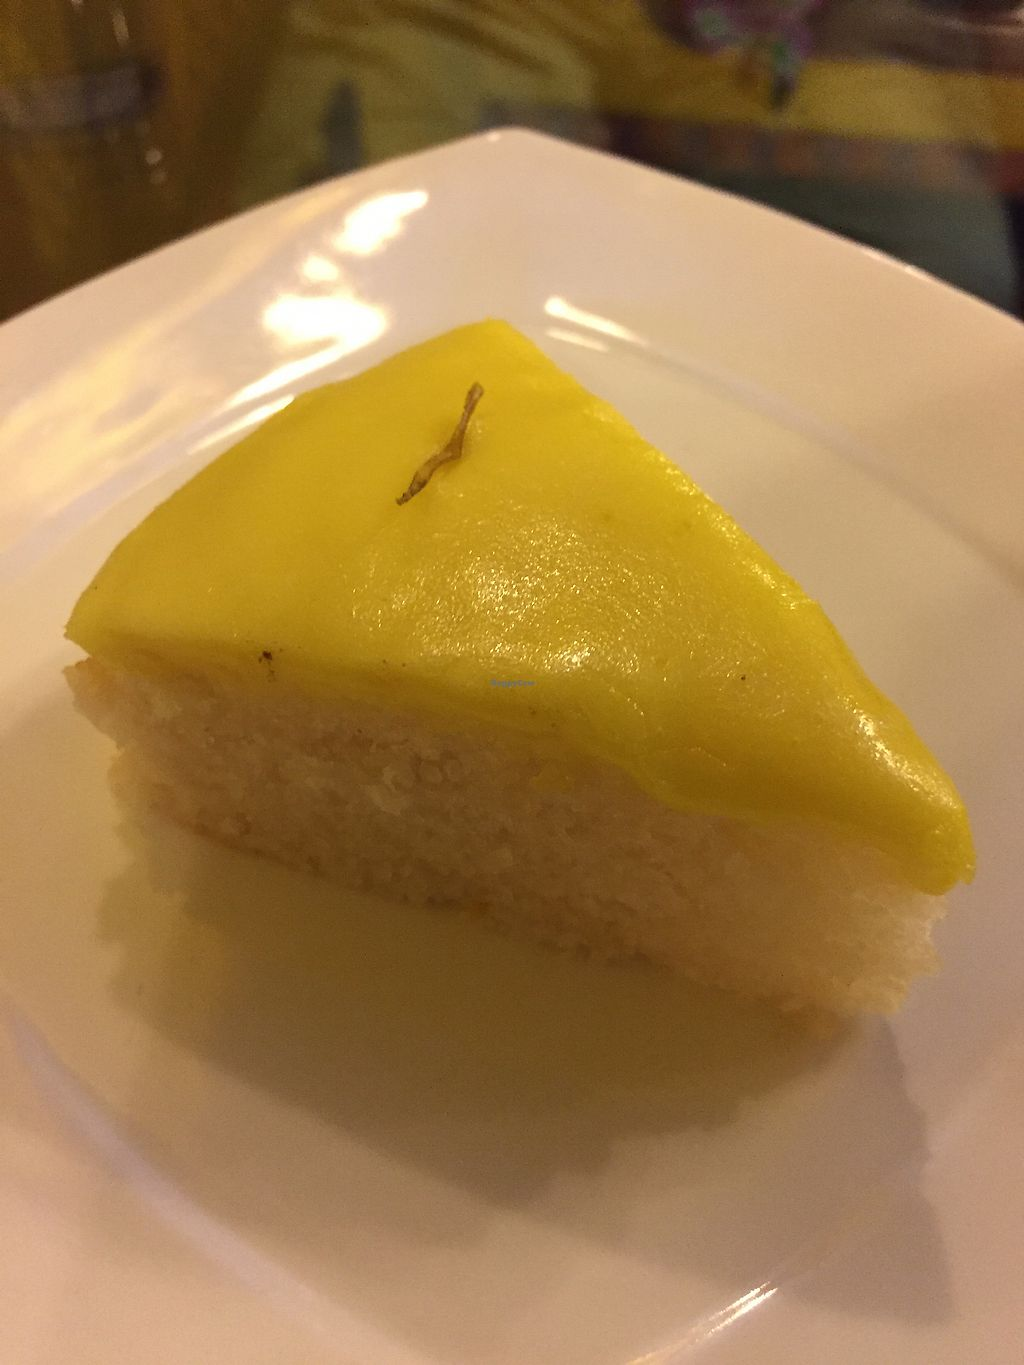 "Photo of Ashvita Nirvana  by <a href=""/members/profile/ChristianeR"">ChristianeR</a> <br/>Citrus and Basil cake (vegan) <br/> November 25, 2017  - <a href='/contact/abuse/image/92013/329023'>Report</a>"